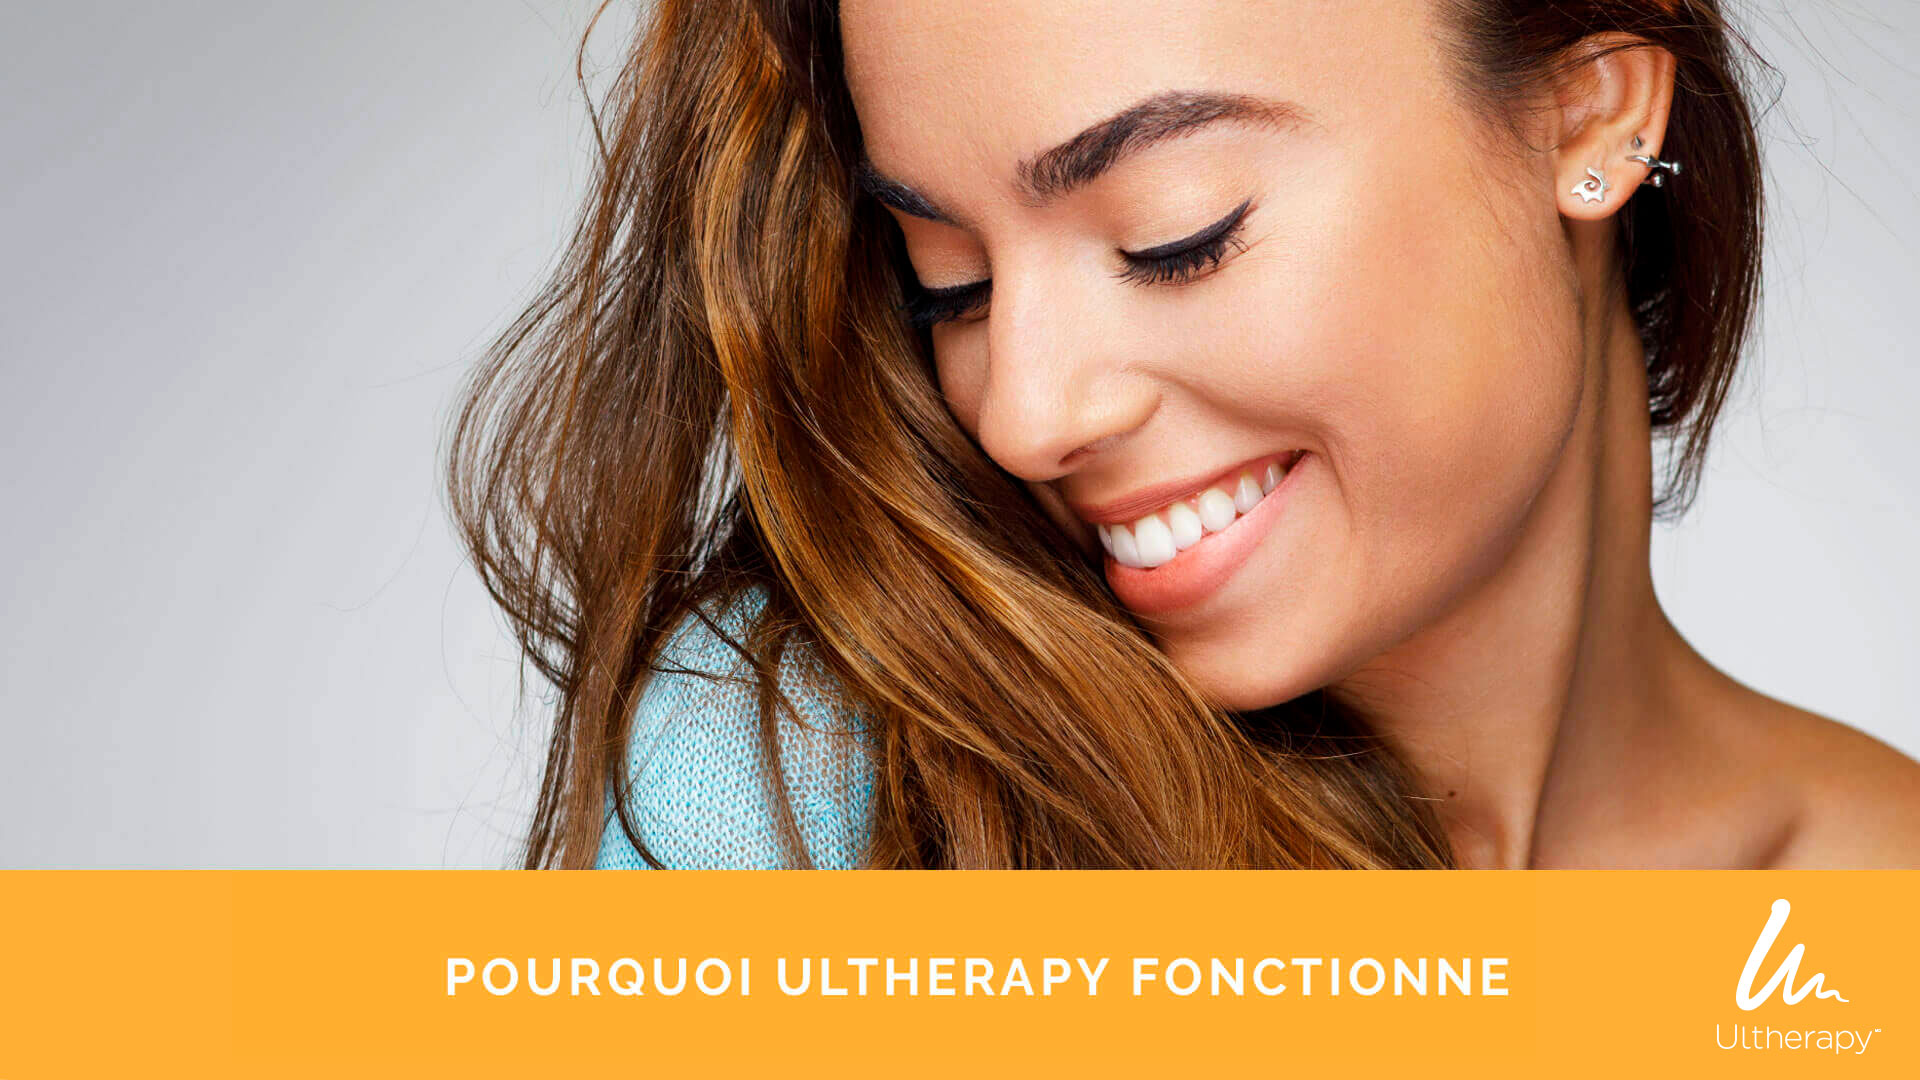 Pourquoi Ultherapy fonctionne